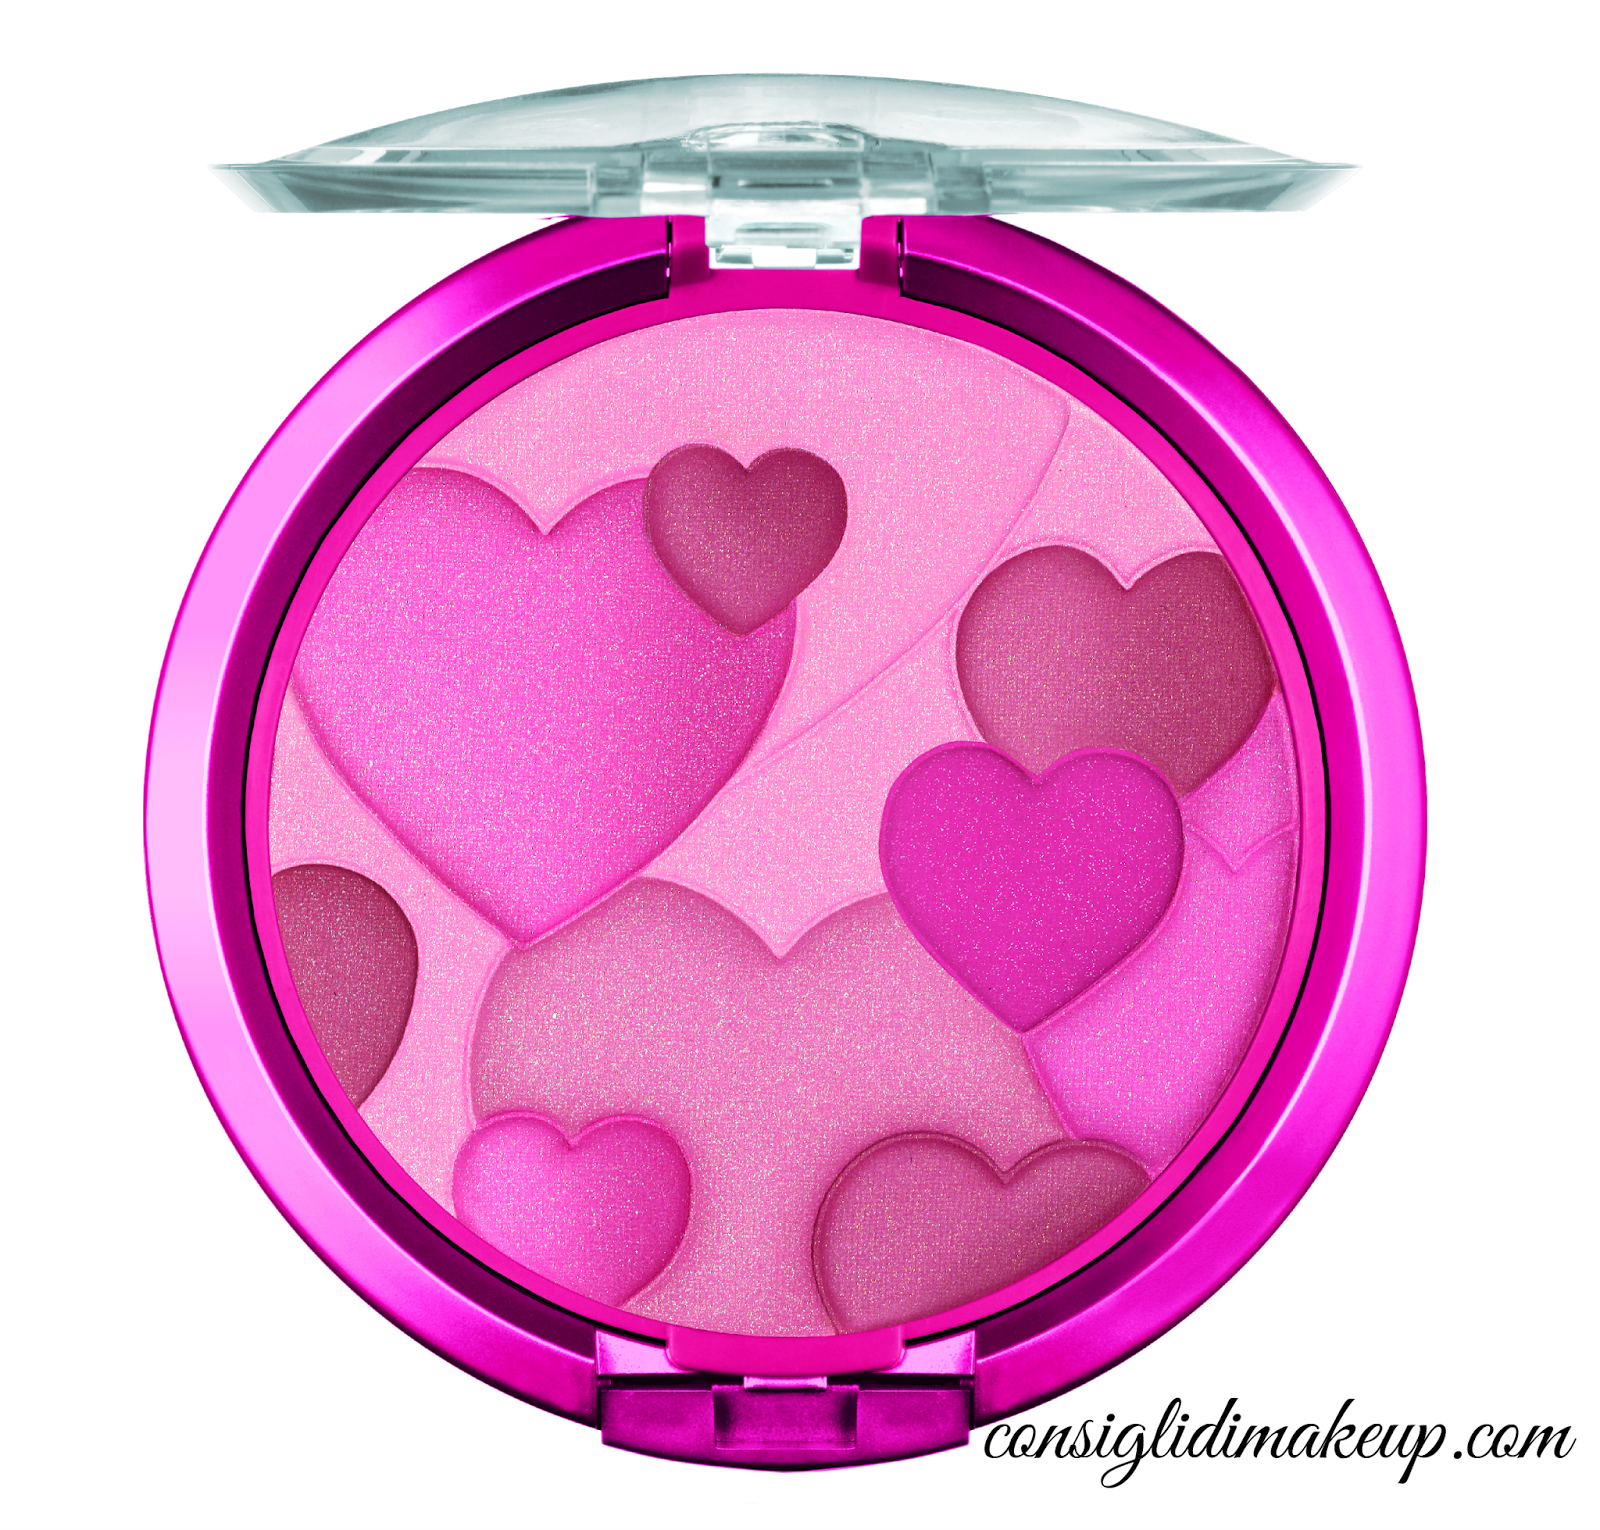 blush happy booster physicians formula